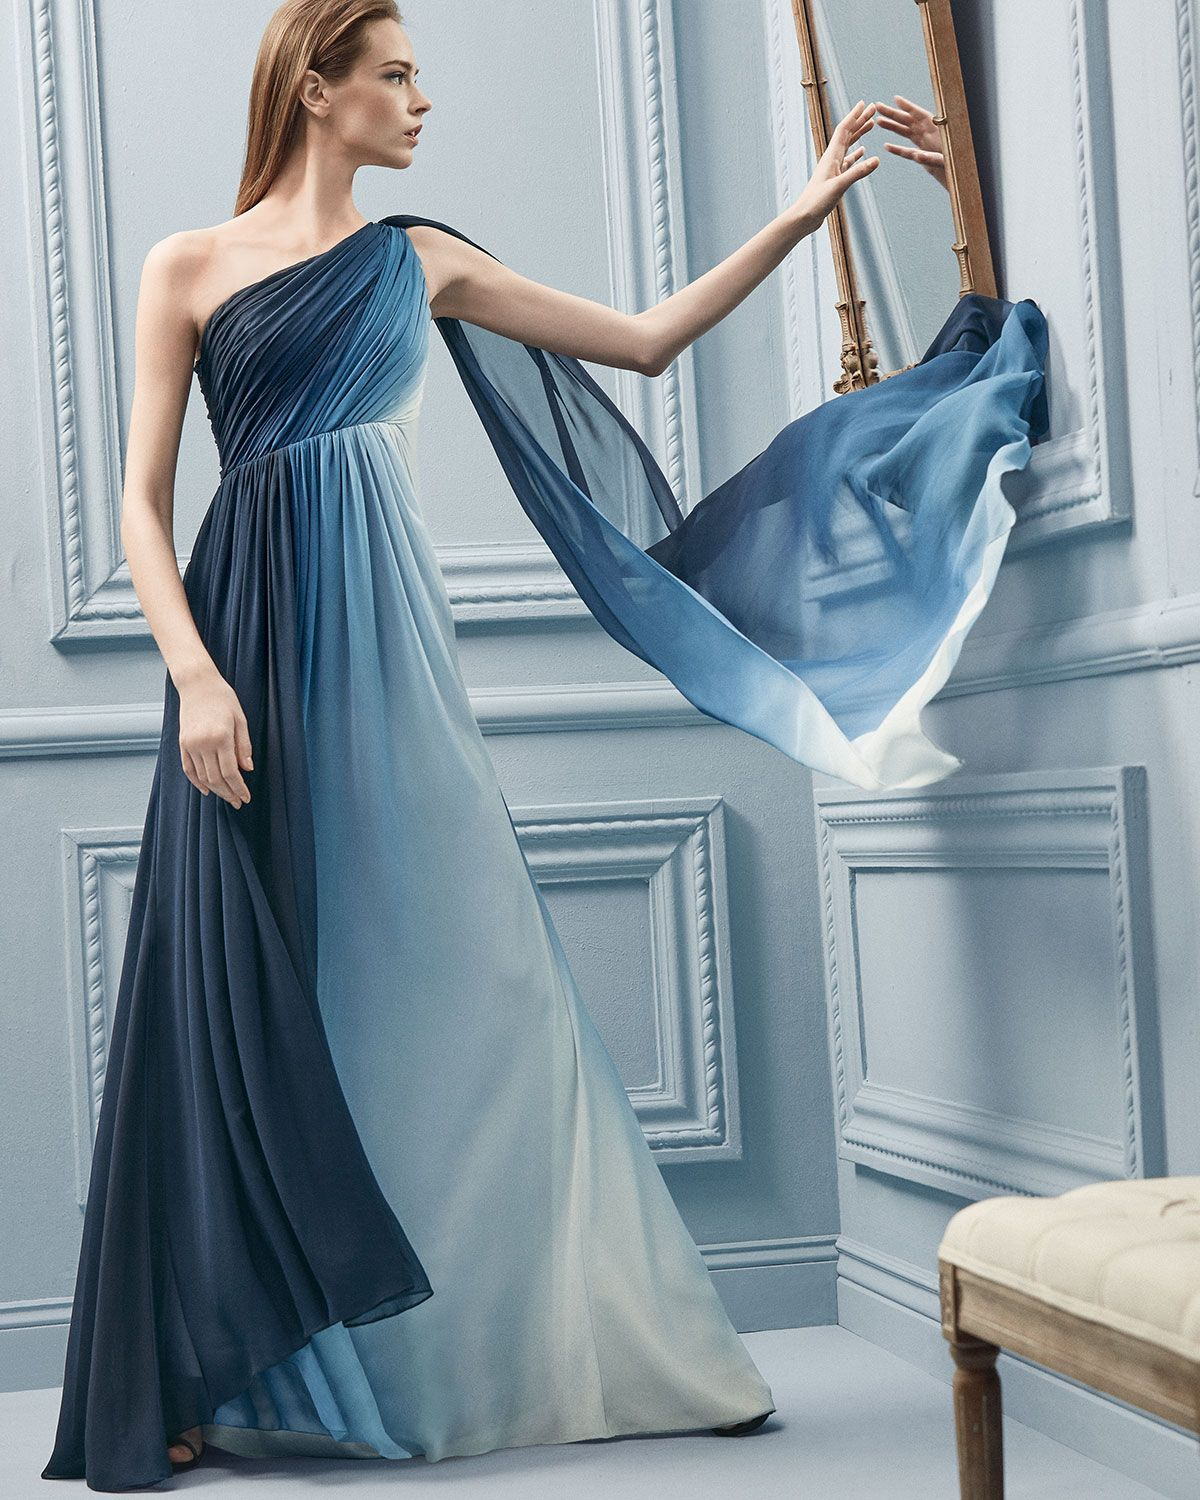 Monique Lhuillier One-Shoulder Ombre Draped Gown in Navy/White ...